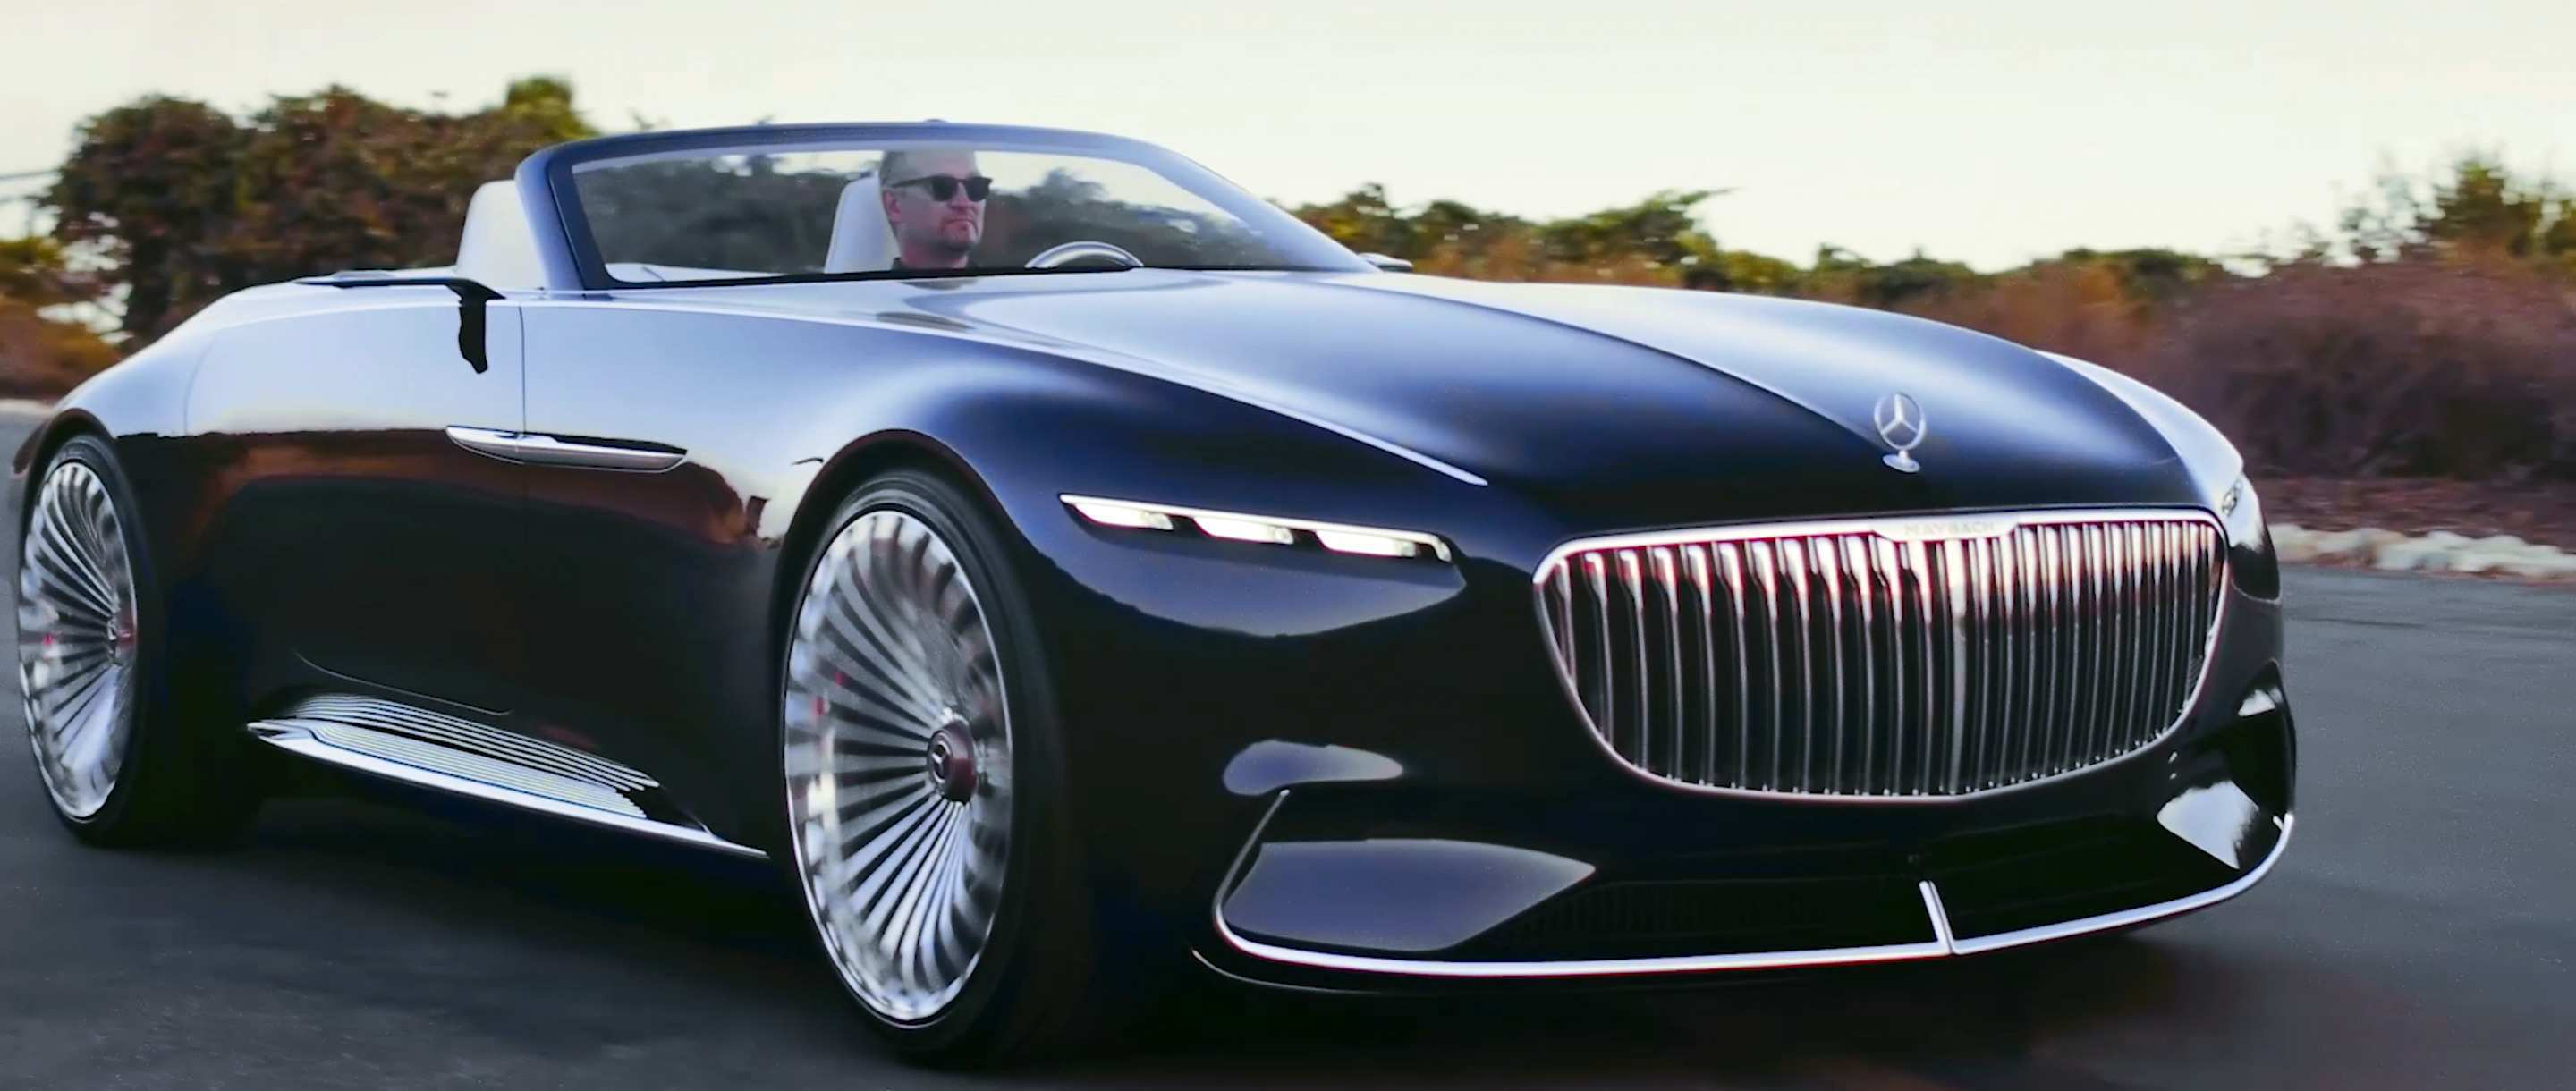 27 A 2019 Mercedes Maybach 6 Cabriolet Price Ratings